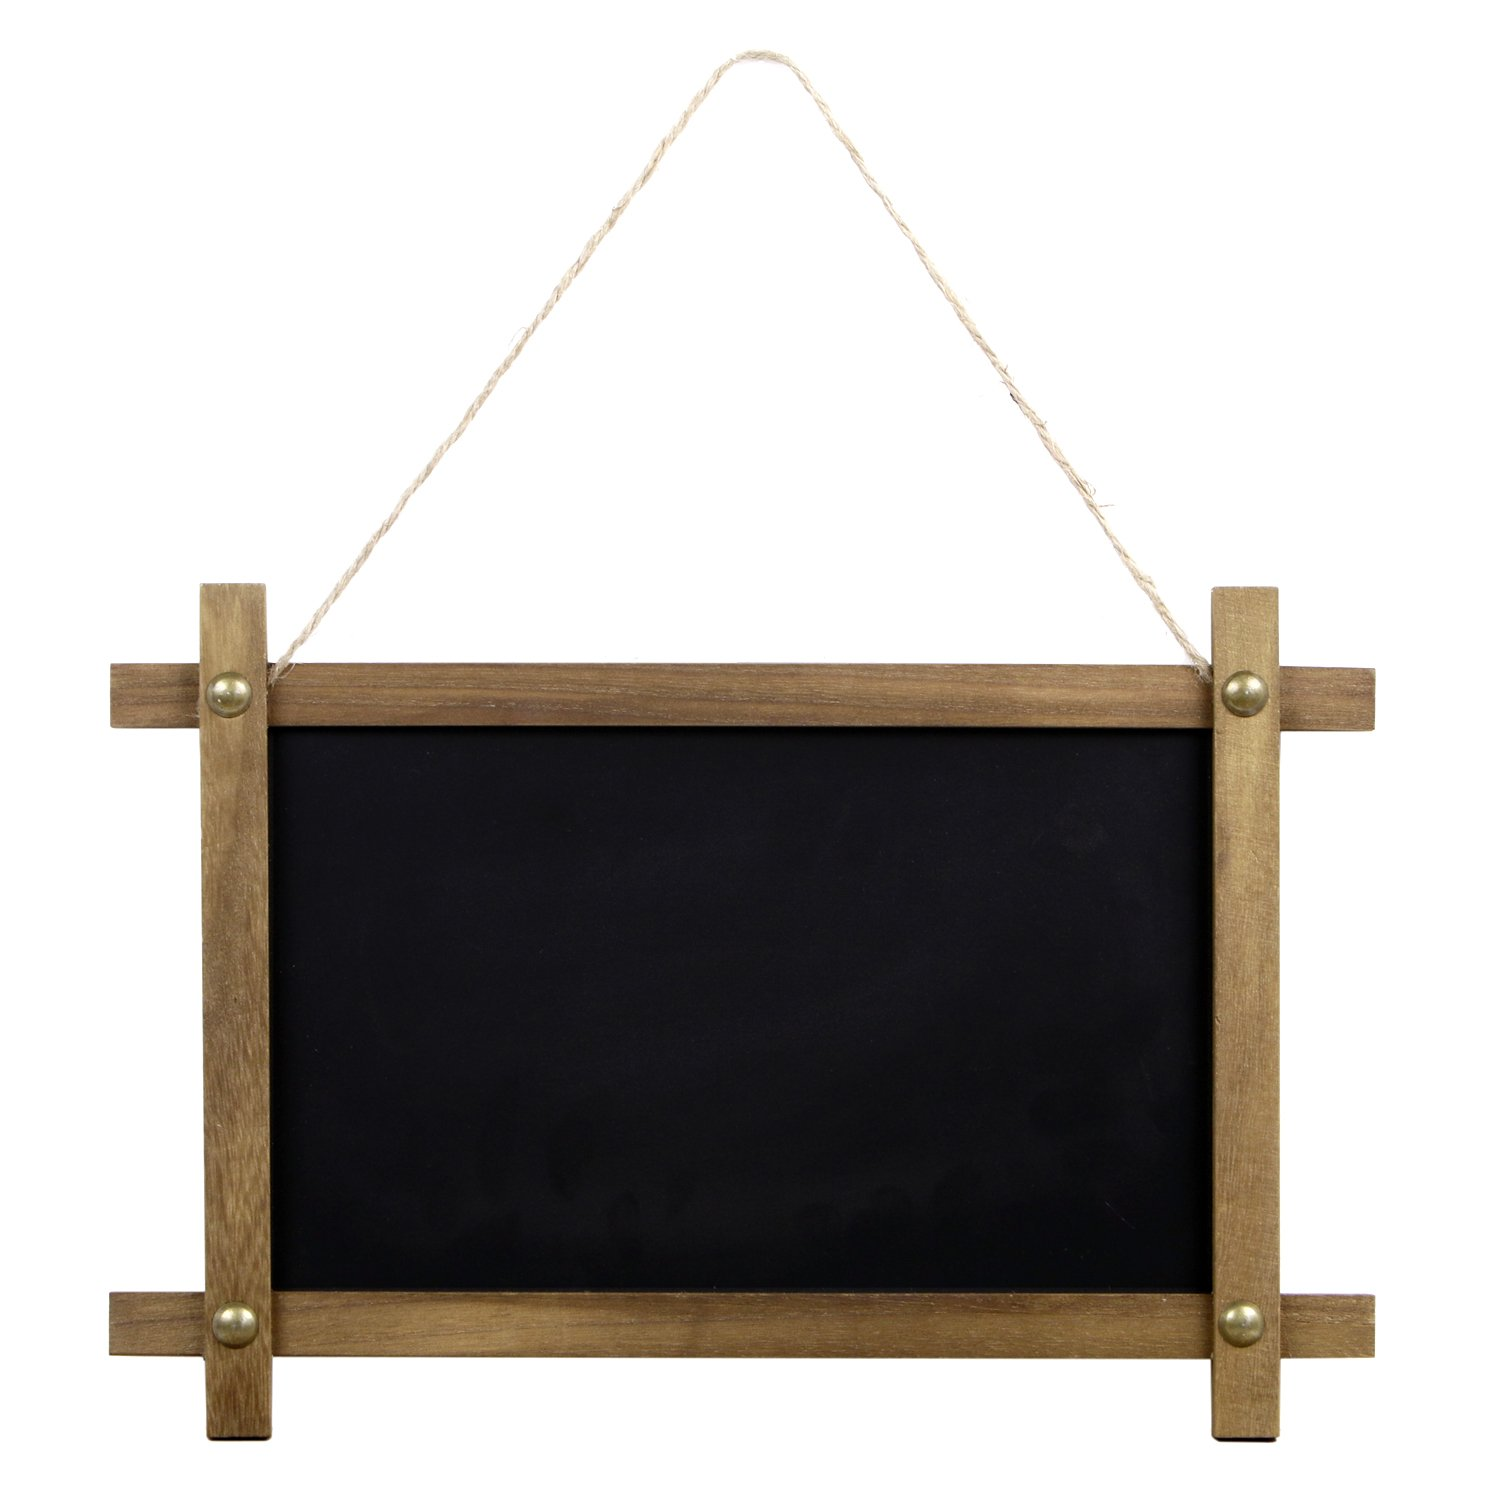 "Rustic Vintage Framed Hanging Steel Chalkboard (15"" x 0.5"" x 10"") Magnetic with Wooden Frame Both Sides Writable VersaChalk"